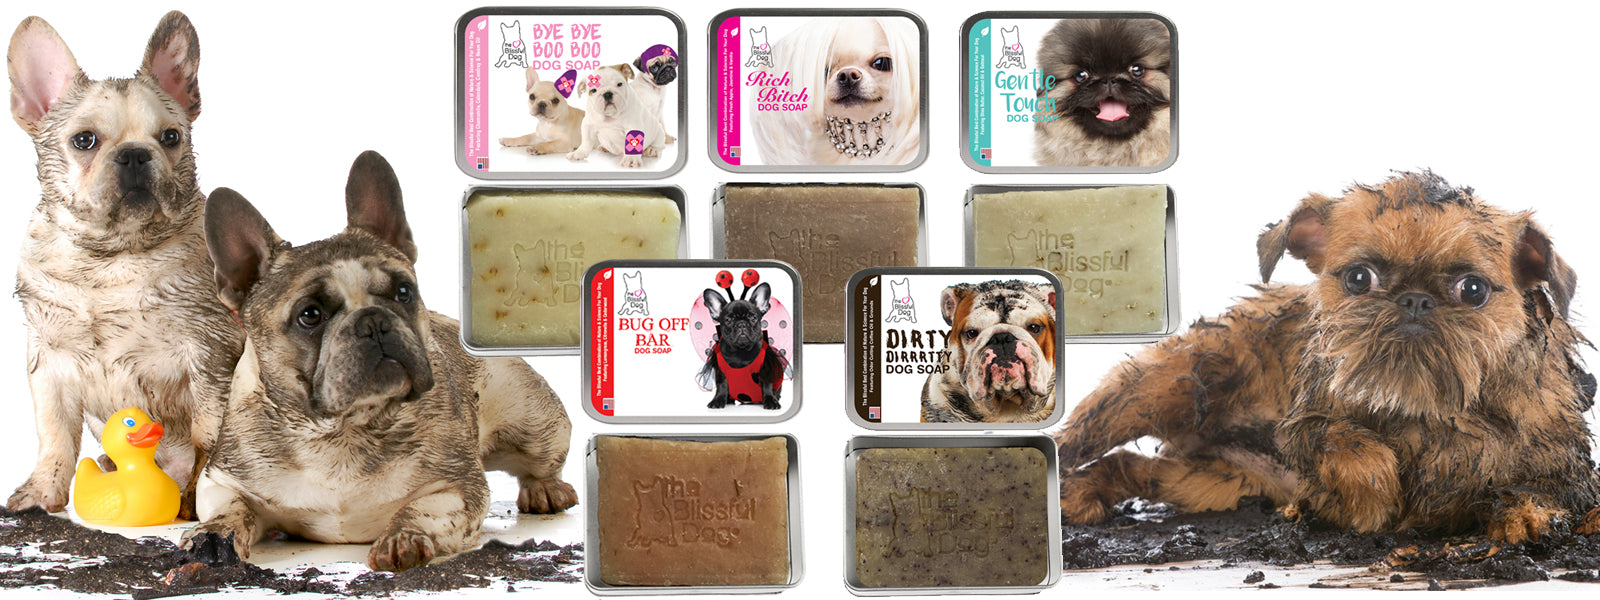 blissful-dog-soap